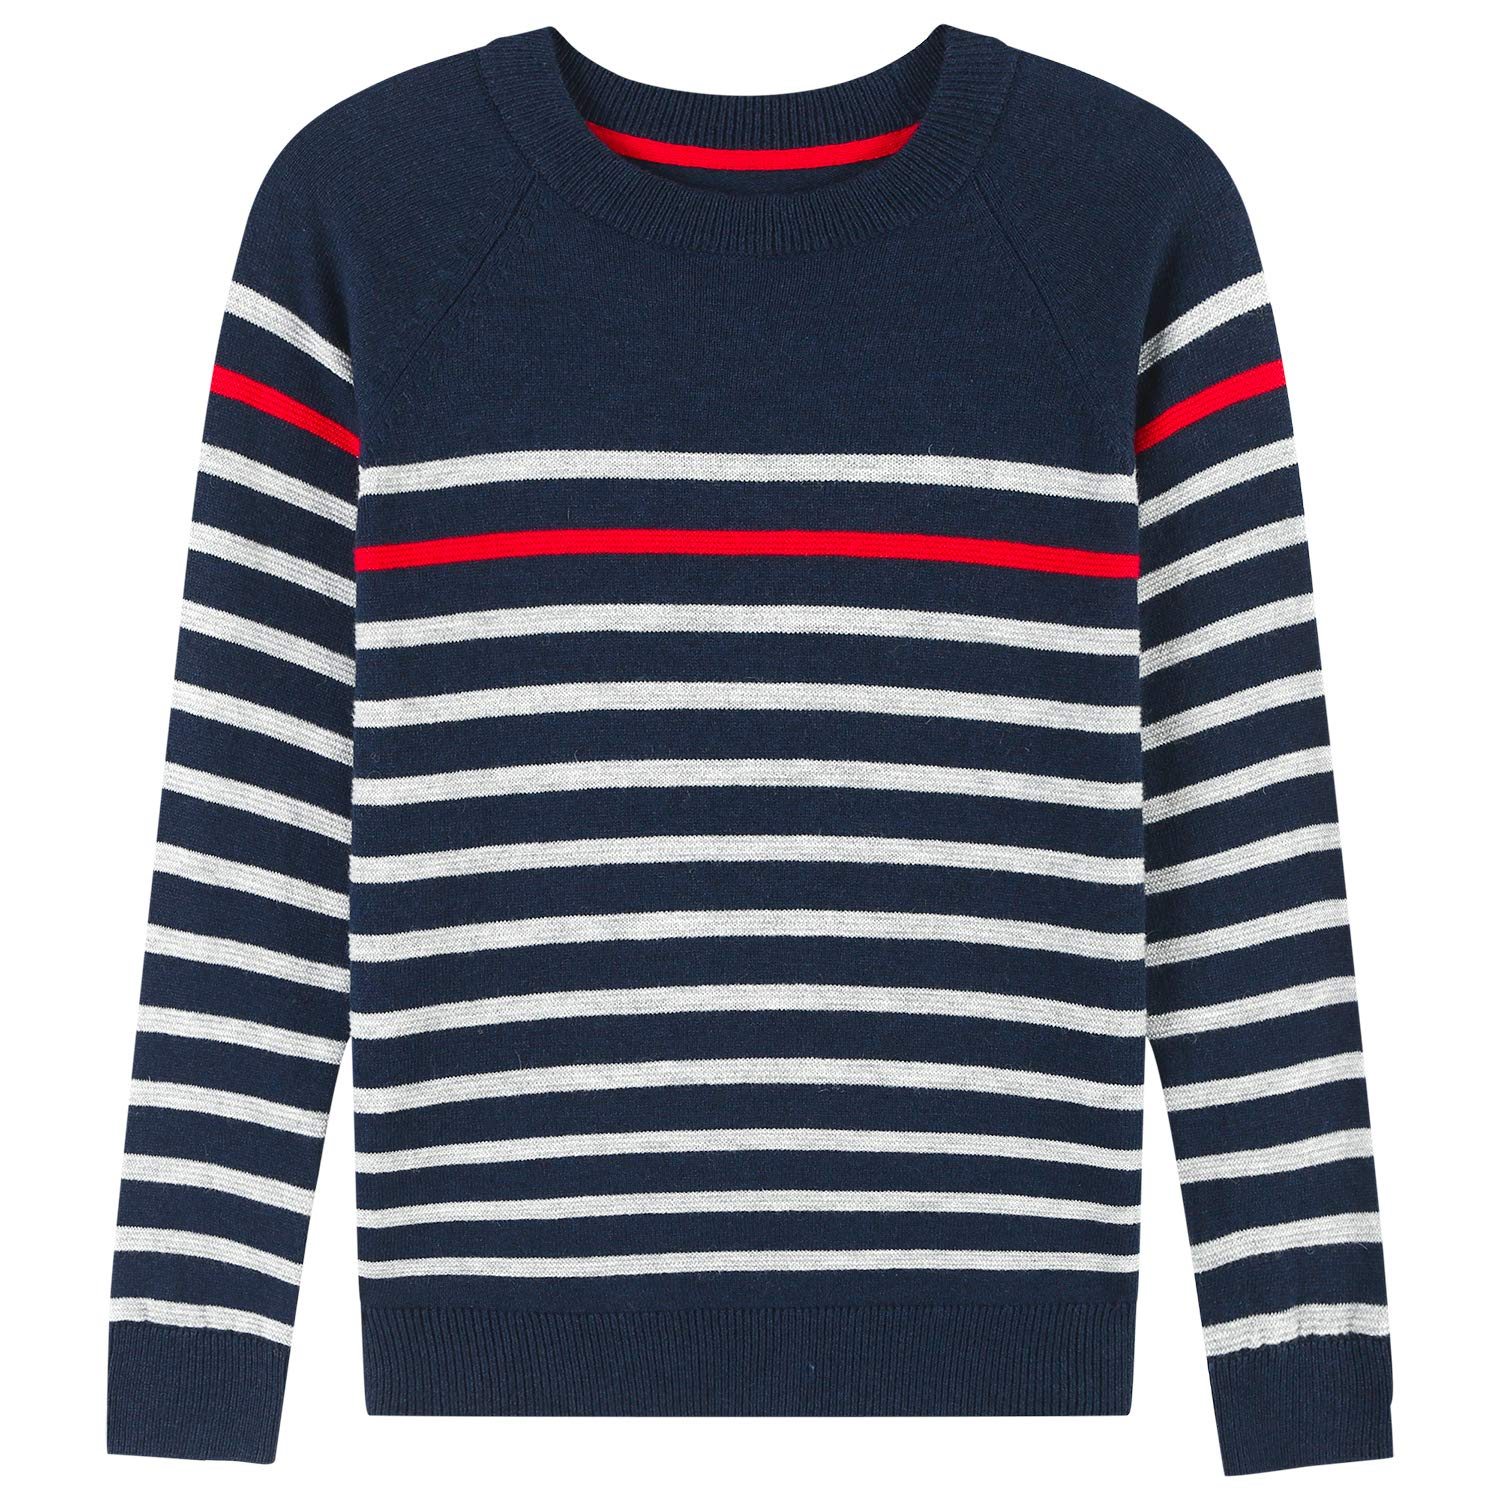 Adory Sweety Tops Sweater for Kids Baby Boy Toddler Soft &Cute Crew Neck Stripe Long Sleeve Pullover(Navy, 6Y)